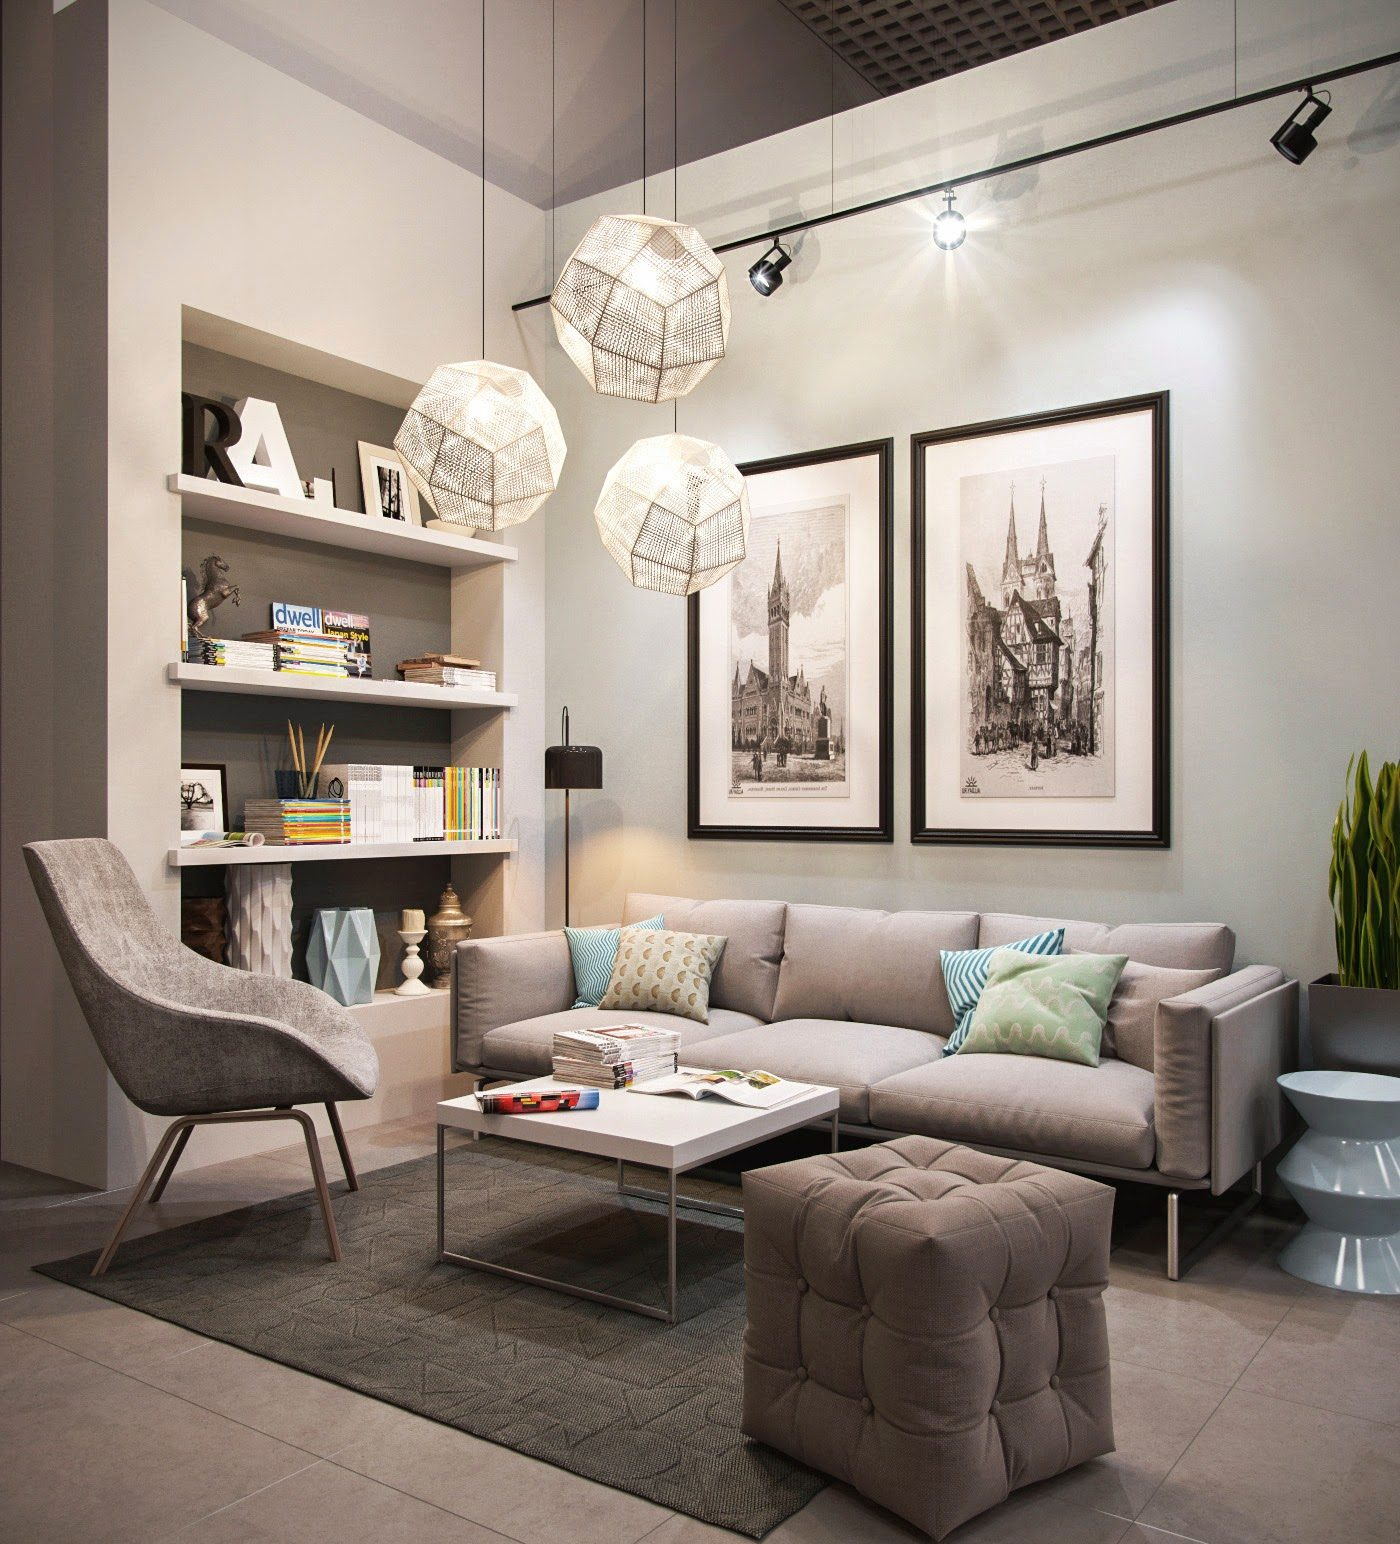 modern sofas 10 Ideas on How to Beautify your Living Room with Modern Sofas 10 Ideas on How to Beautify your Living Room with Modern Sofas6 e1467365261323